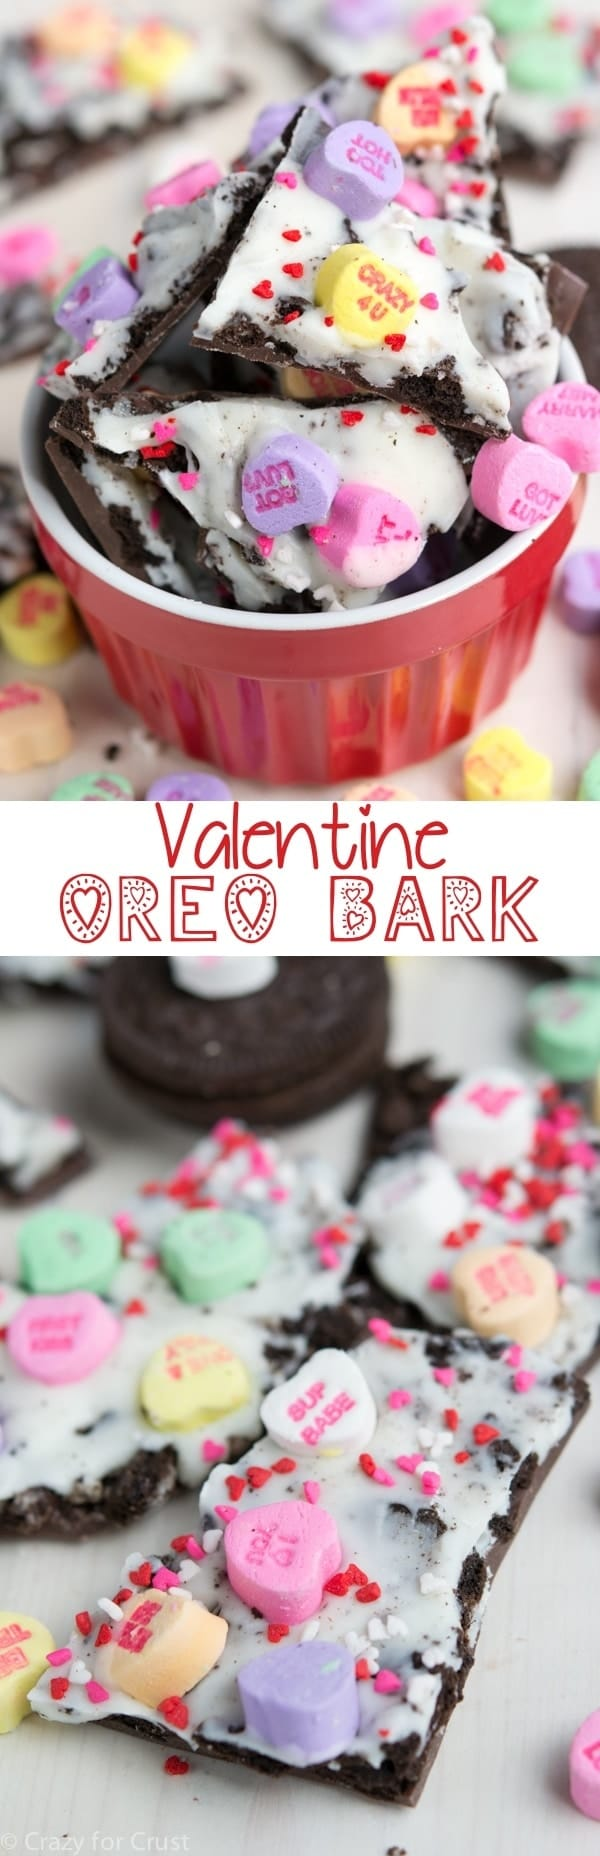 Valentine Oreo Bark is the perfect treat to give on Valentine's Day! Layers of white and milk chocolate sandwich Oreo cookies and conversation hearts.